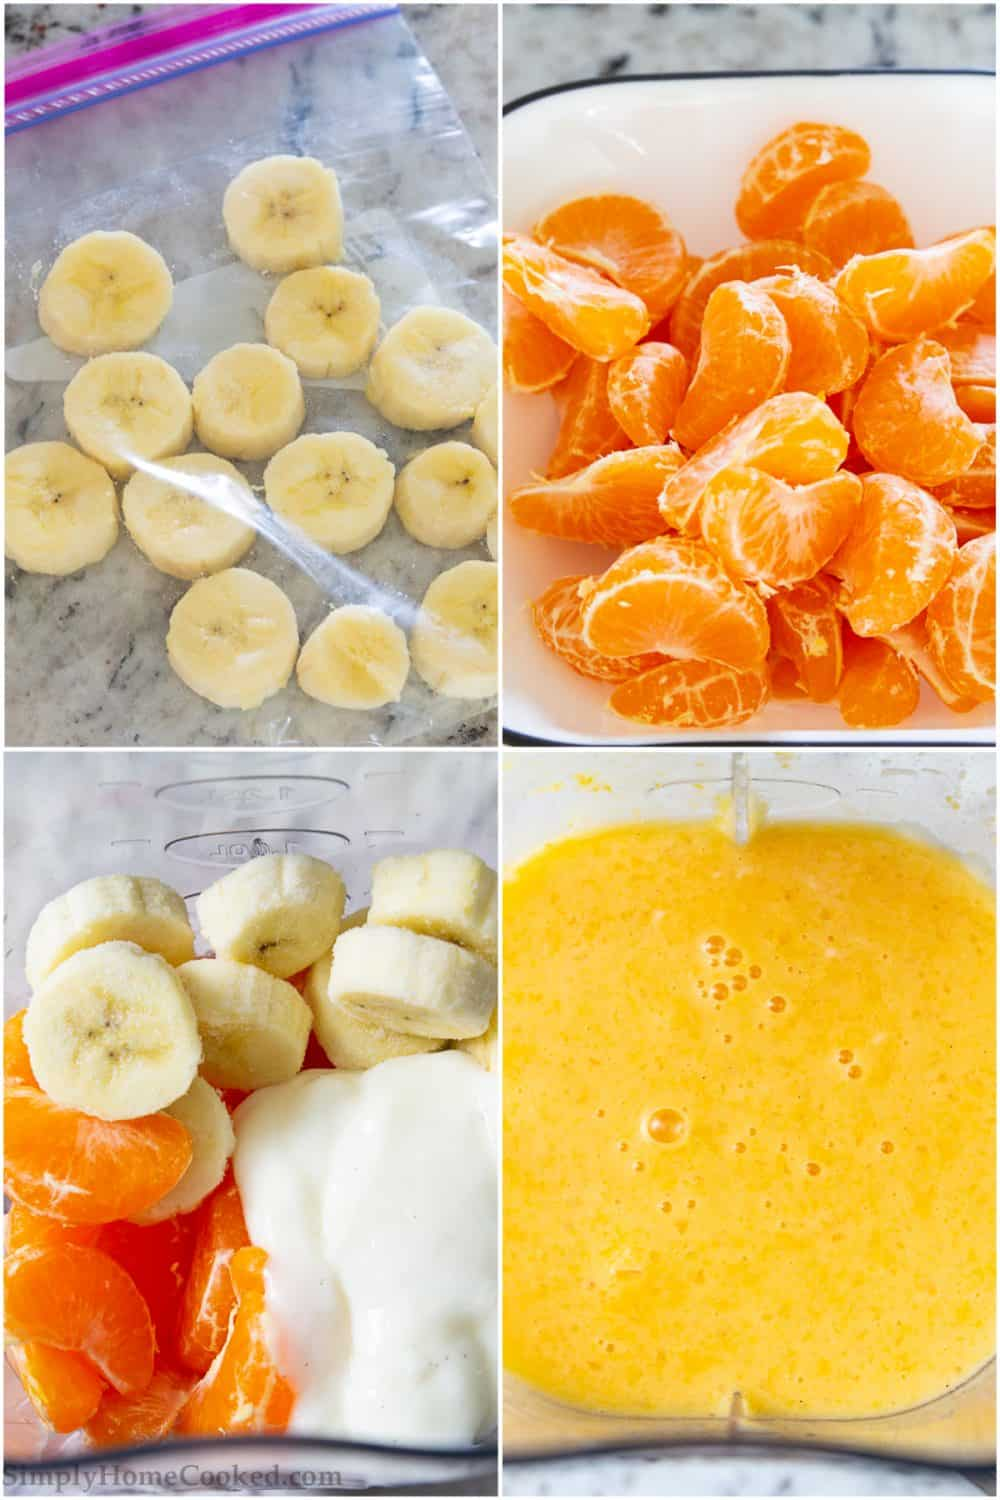 Collage tutorial of preparing bananas and mandarins for the freezer then adding with other ingredients into a blender to create the banana smoothie recipe with mandarins